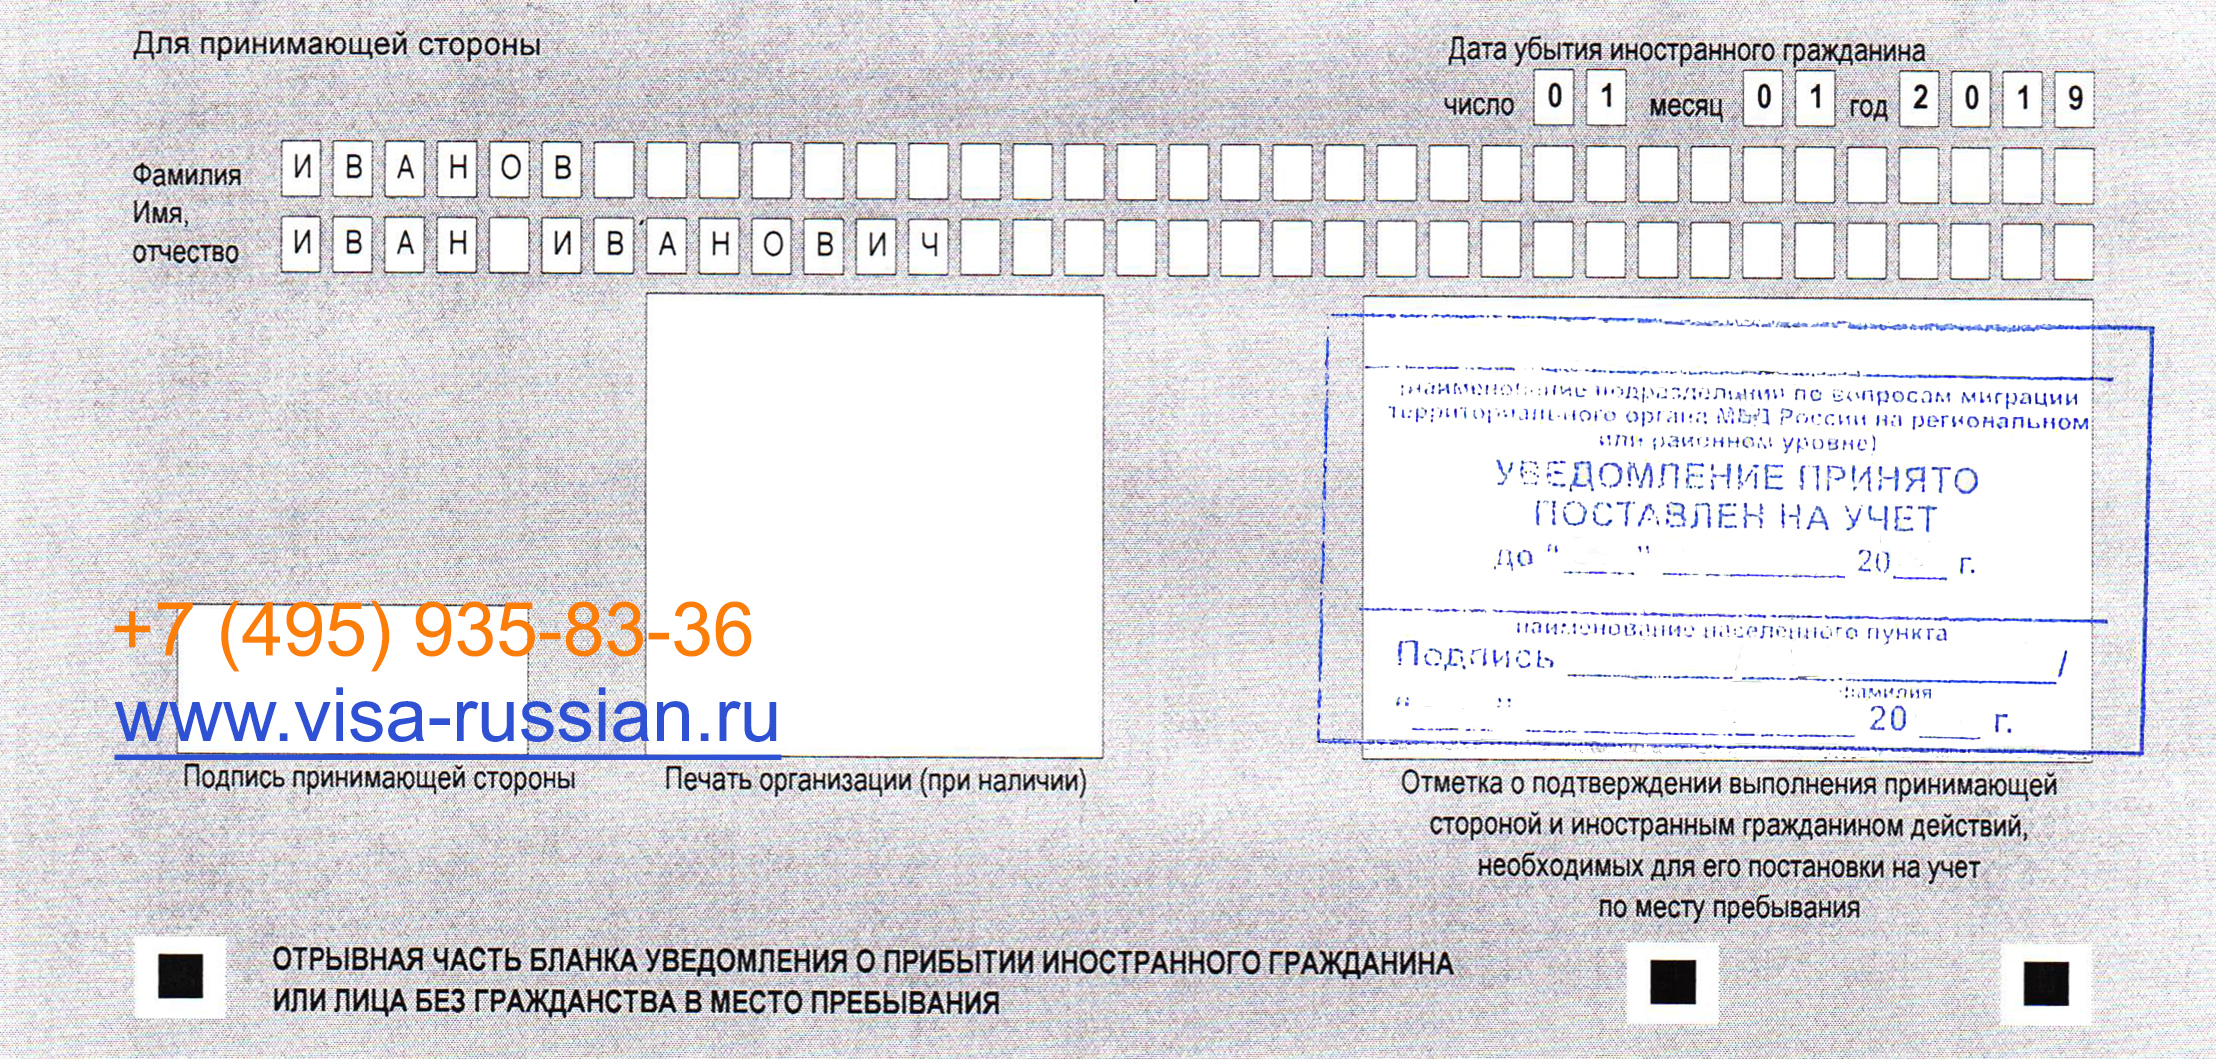 Photo of a foreigner's registration (reverse)